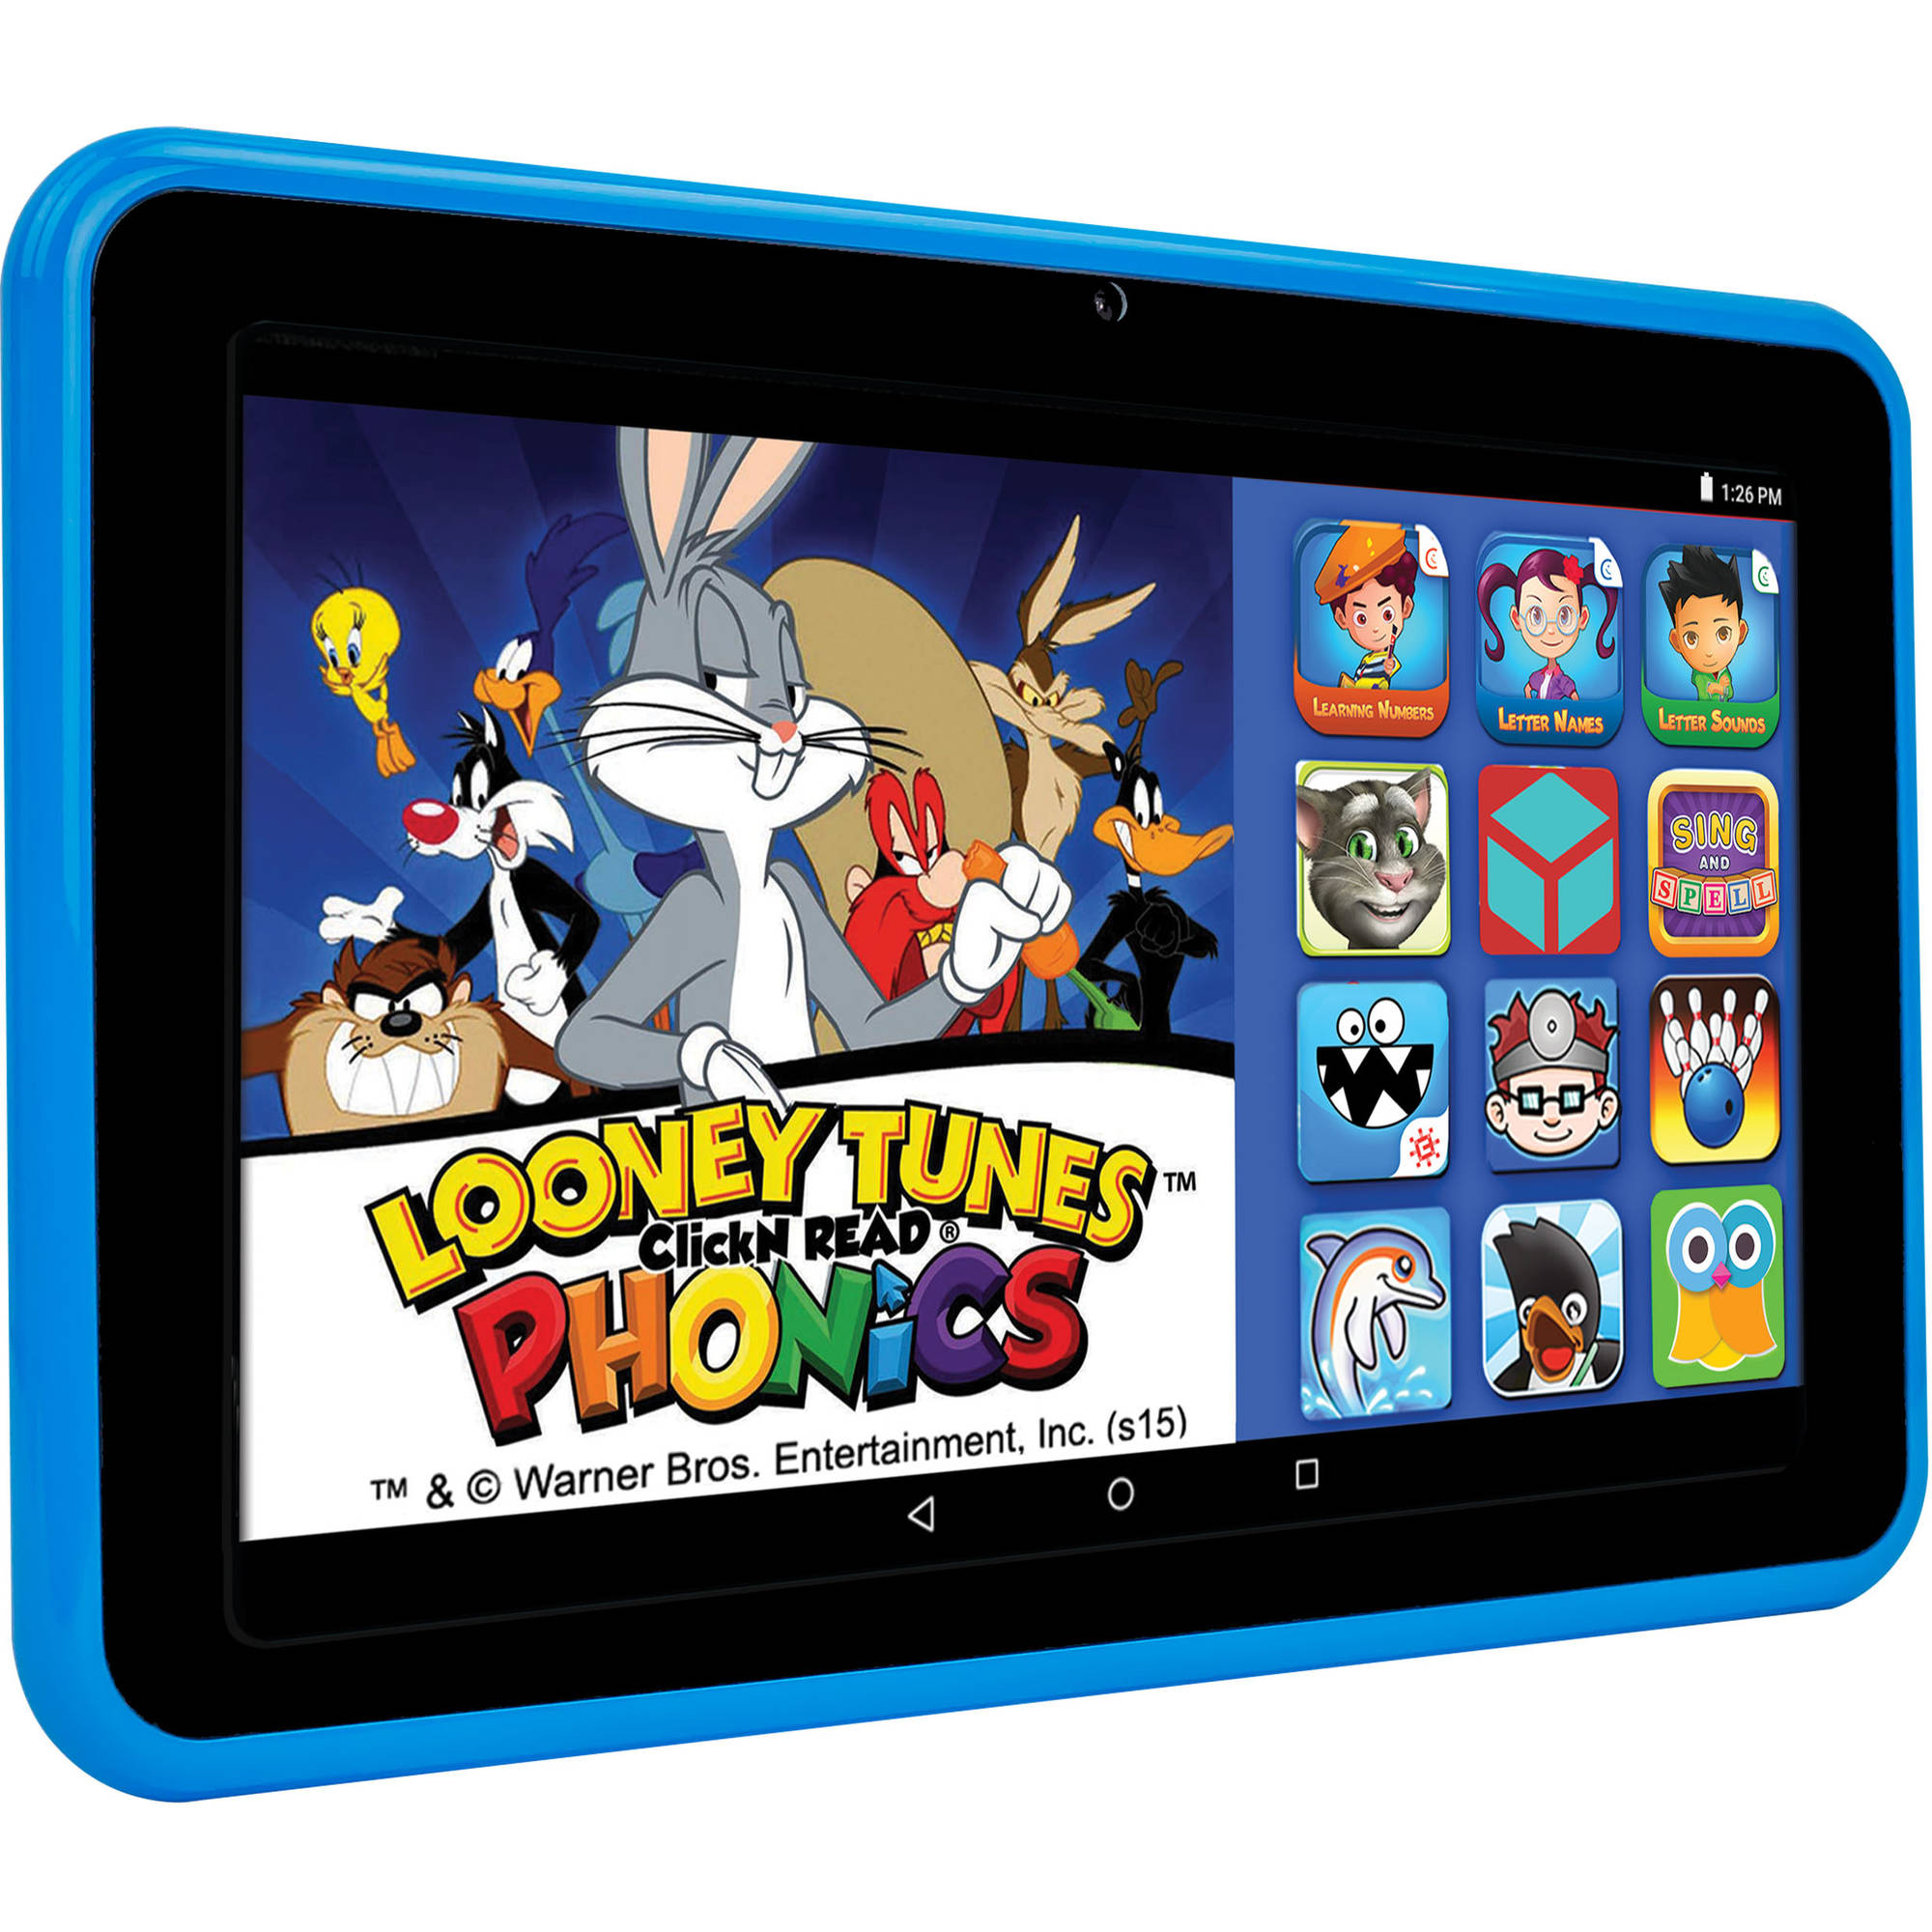 What games are on the tablet